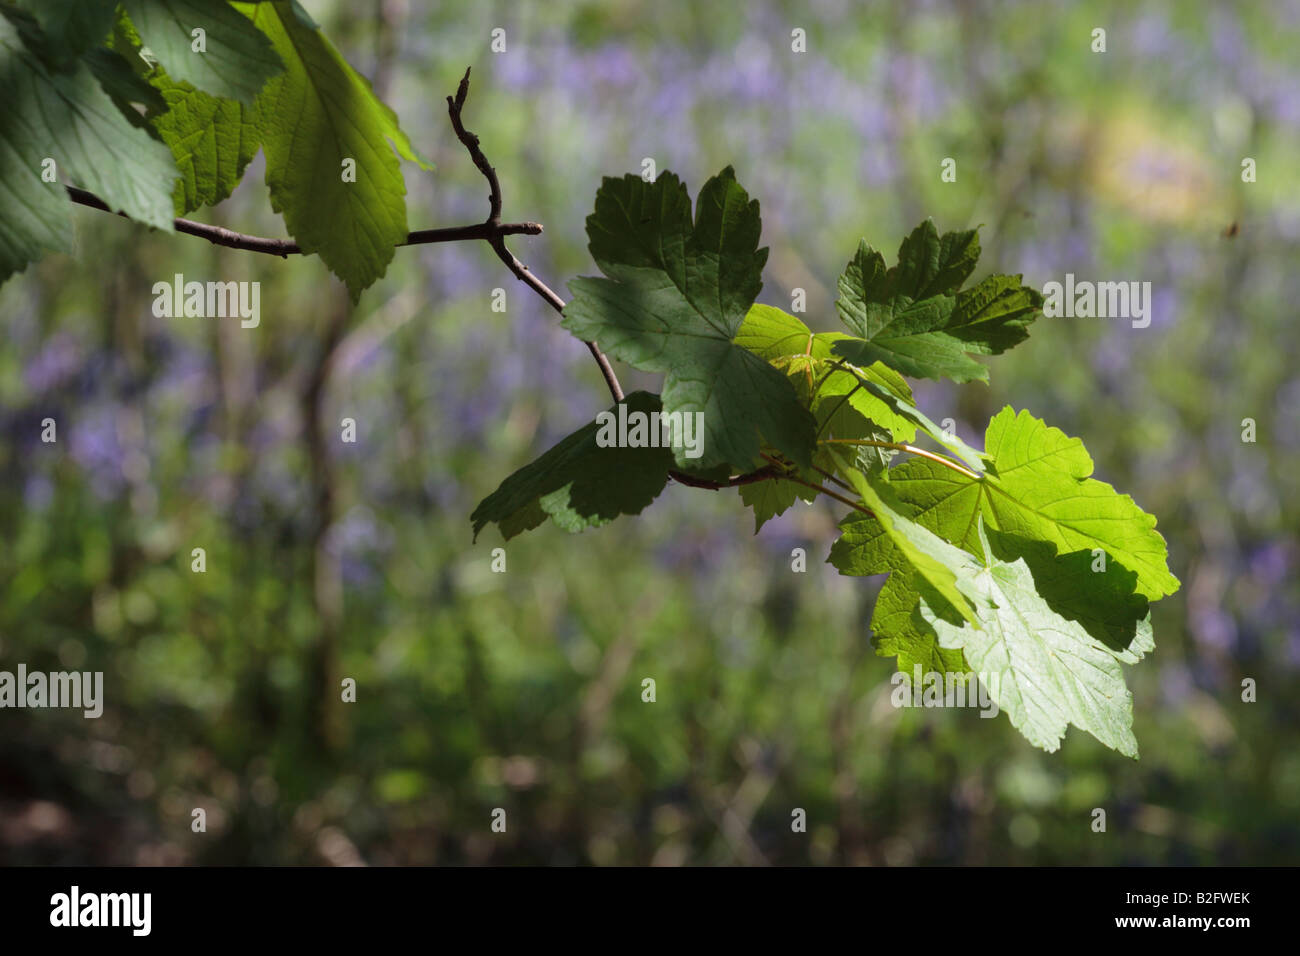 Woodland scene of spotlit Sycamore leaves against a background of Bluebells in Menstrie Wood. - Stock Image